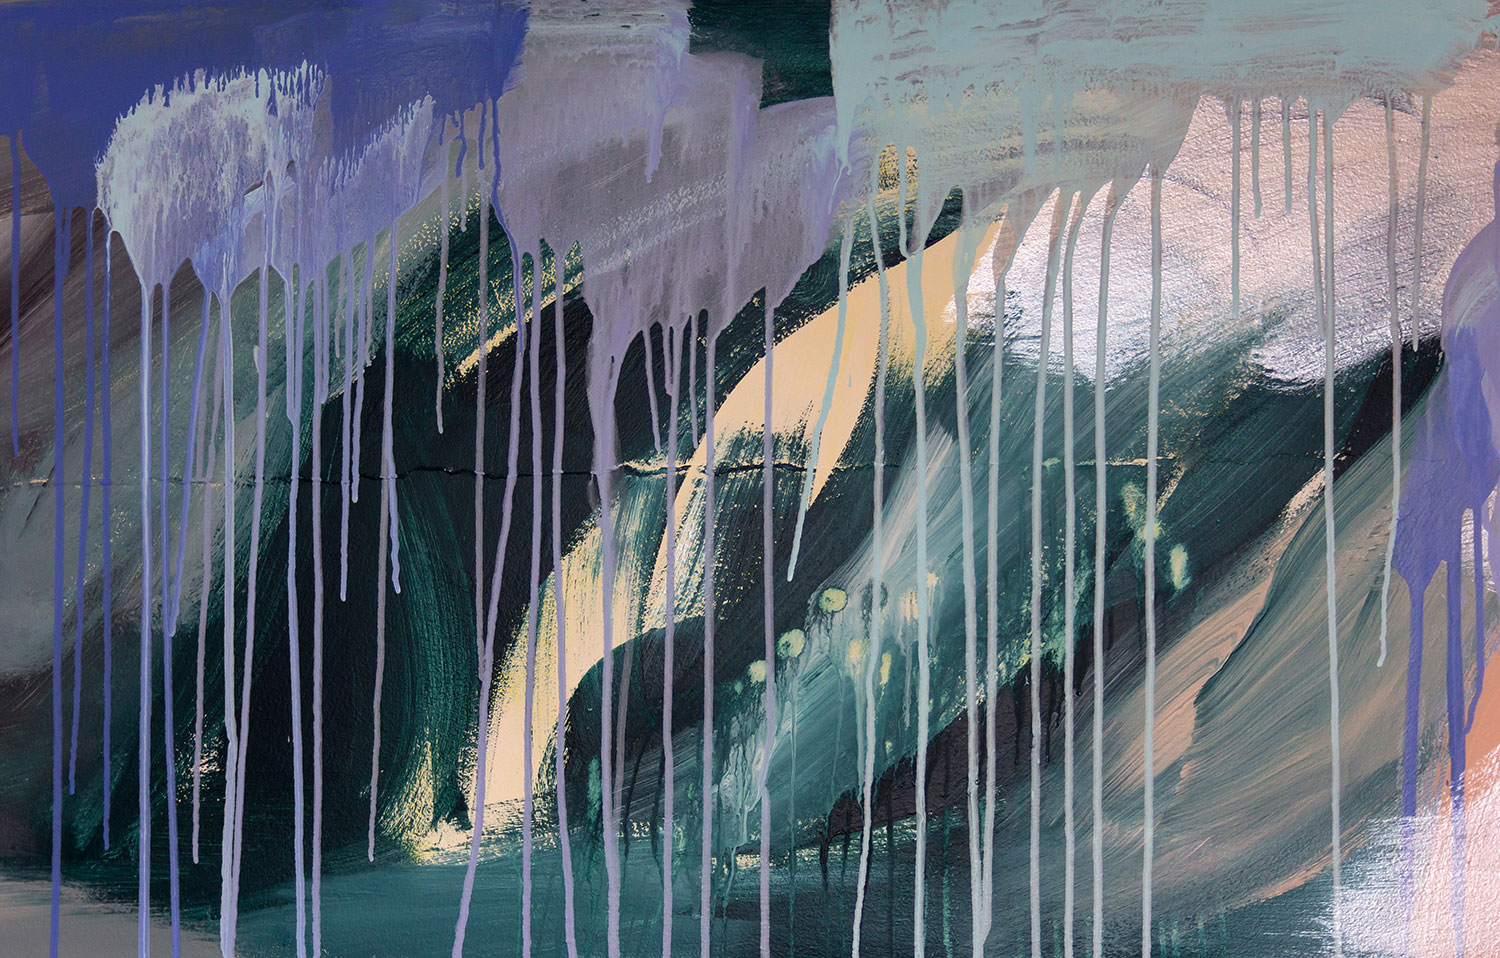 Close up detail of abstract painting featuring drips and metallic paint, brush strokes visible.